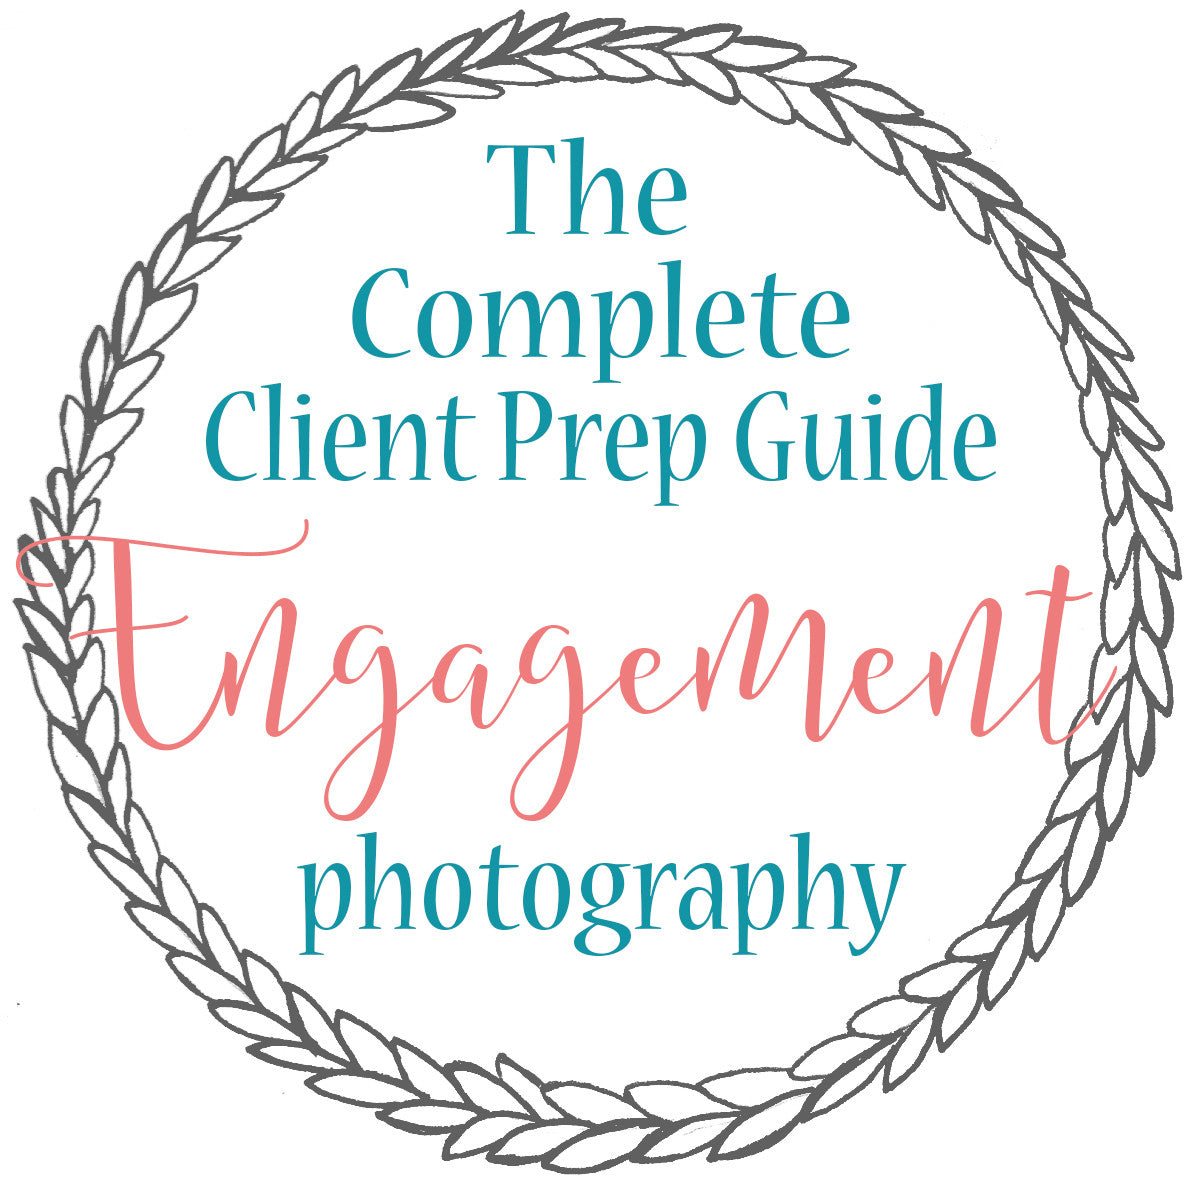 The Complete Client Prep Guide for Engagements